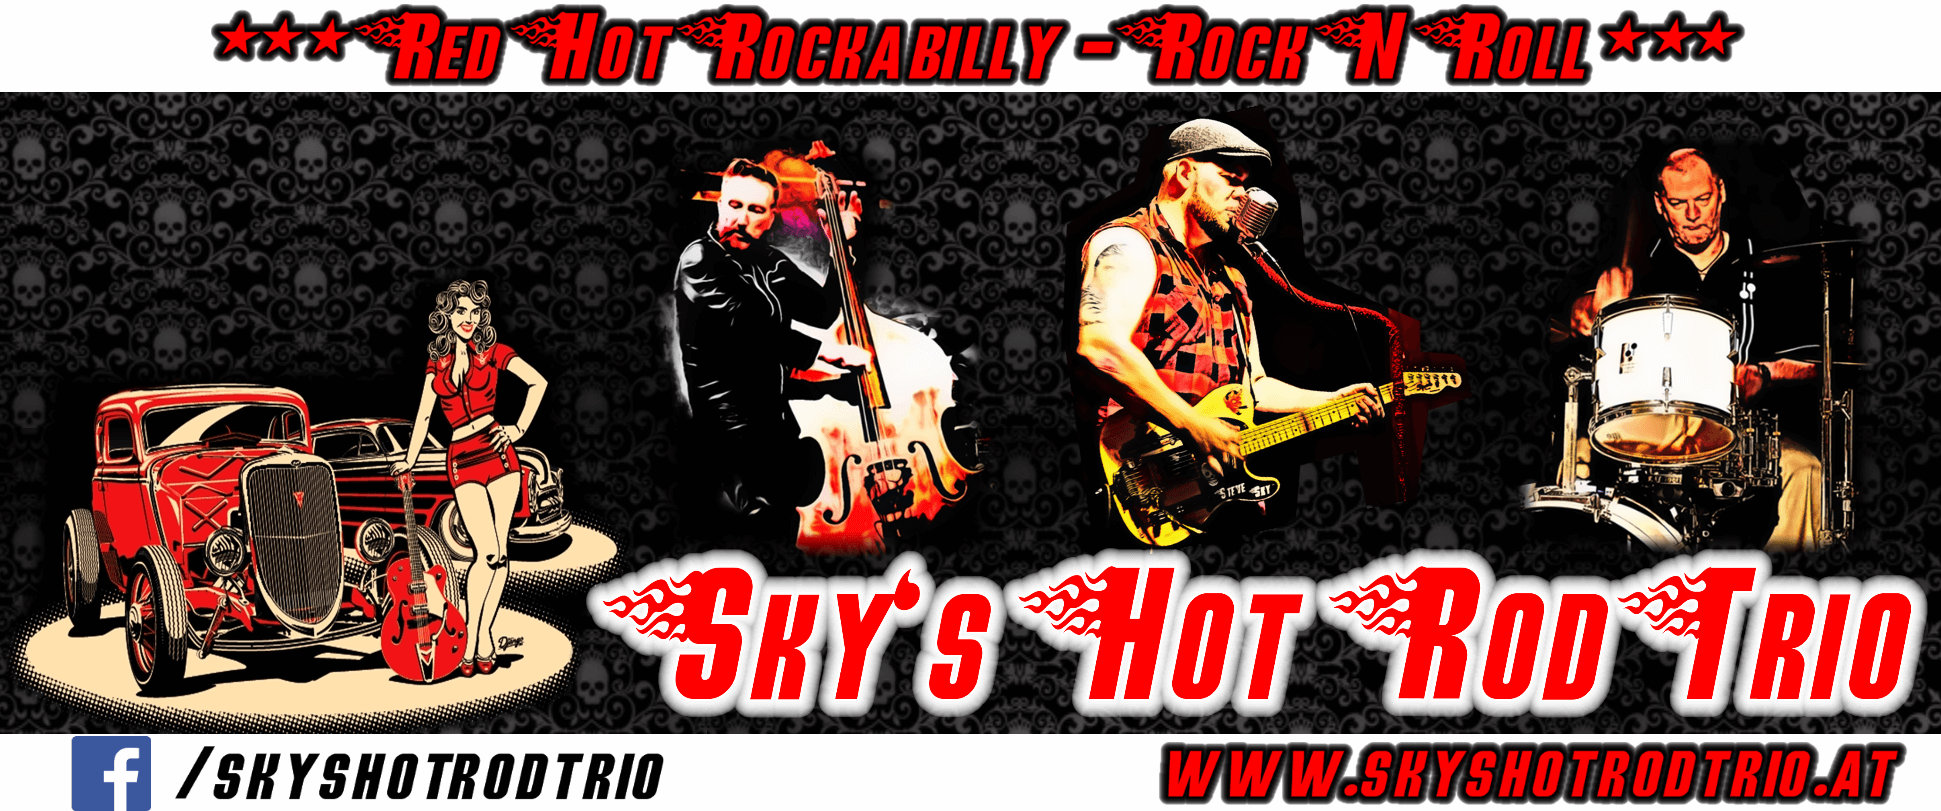 *Abgesagt* Sky's Hot Rod Trio- Live Musik - 31. August 2018